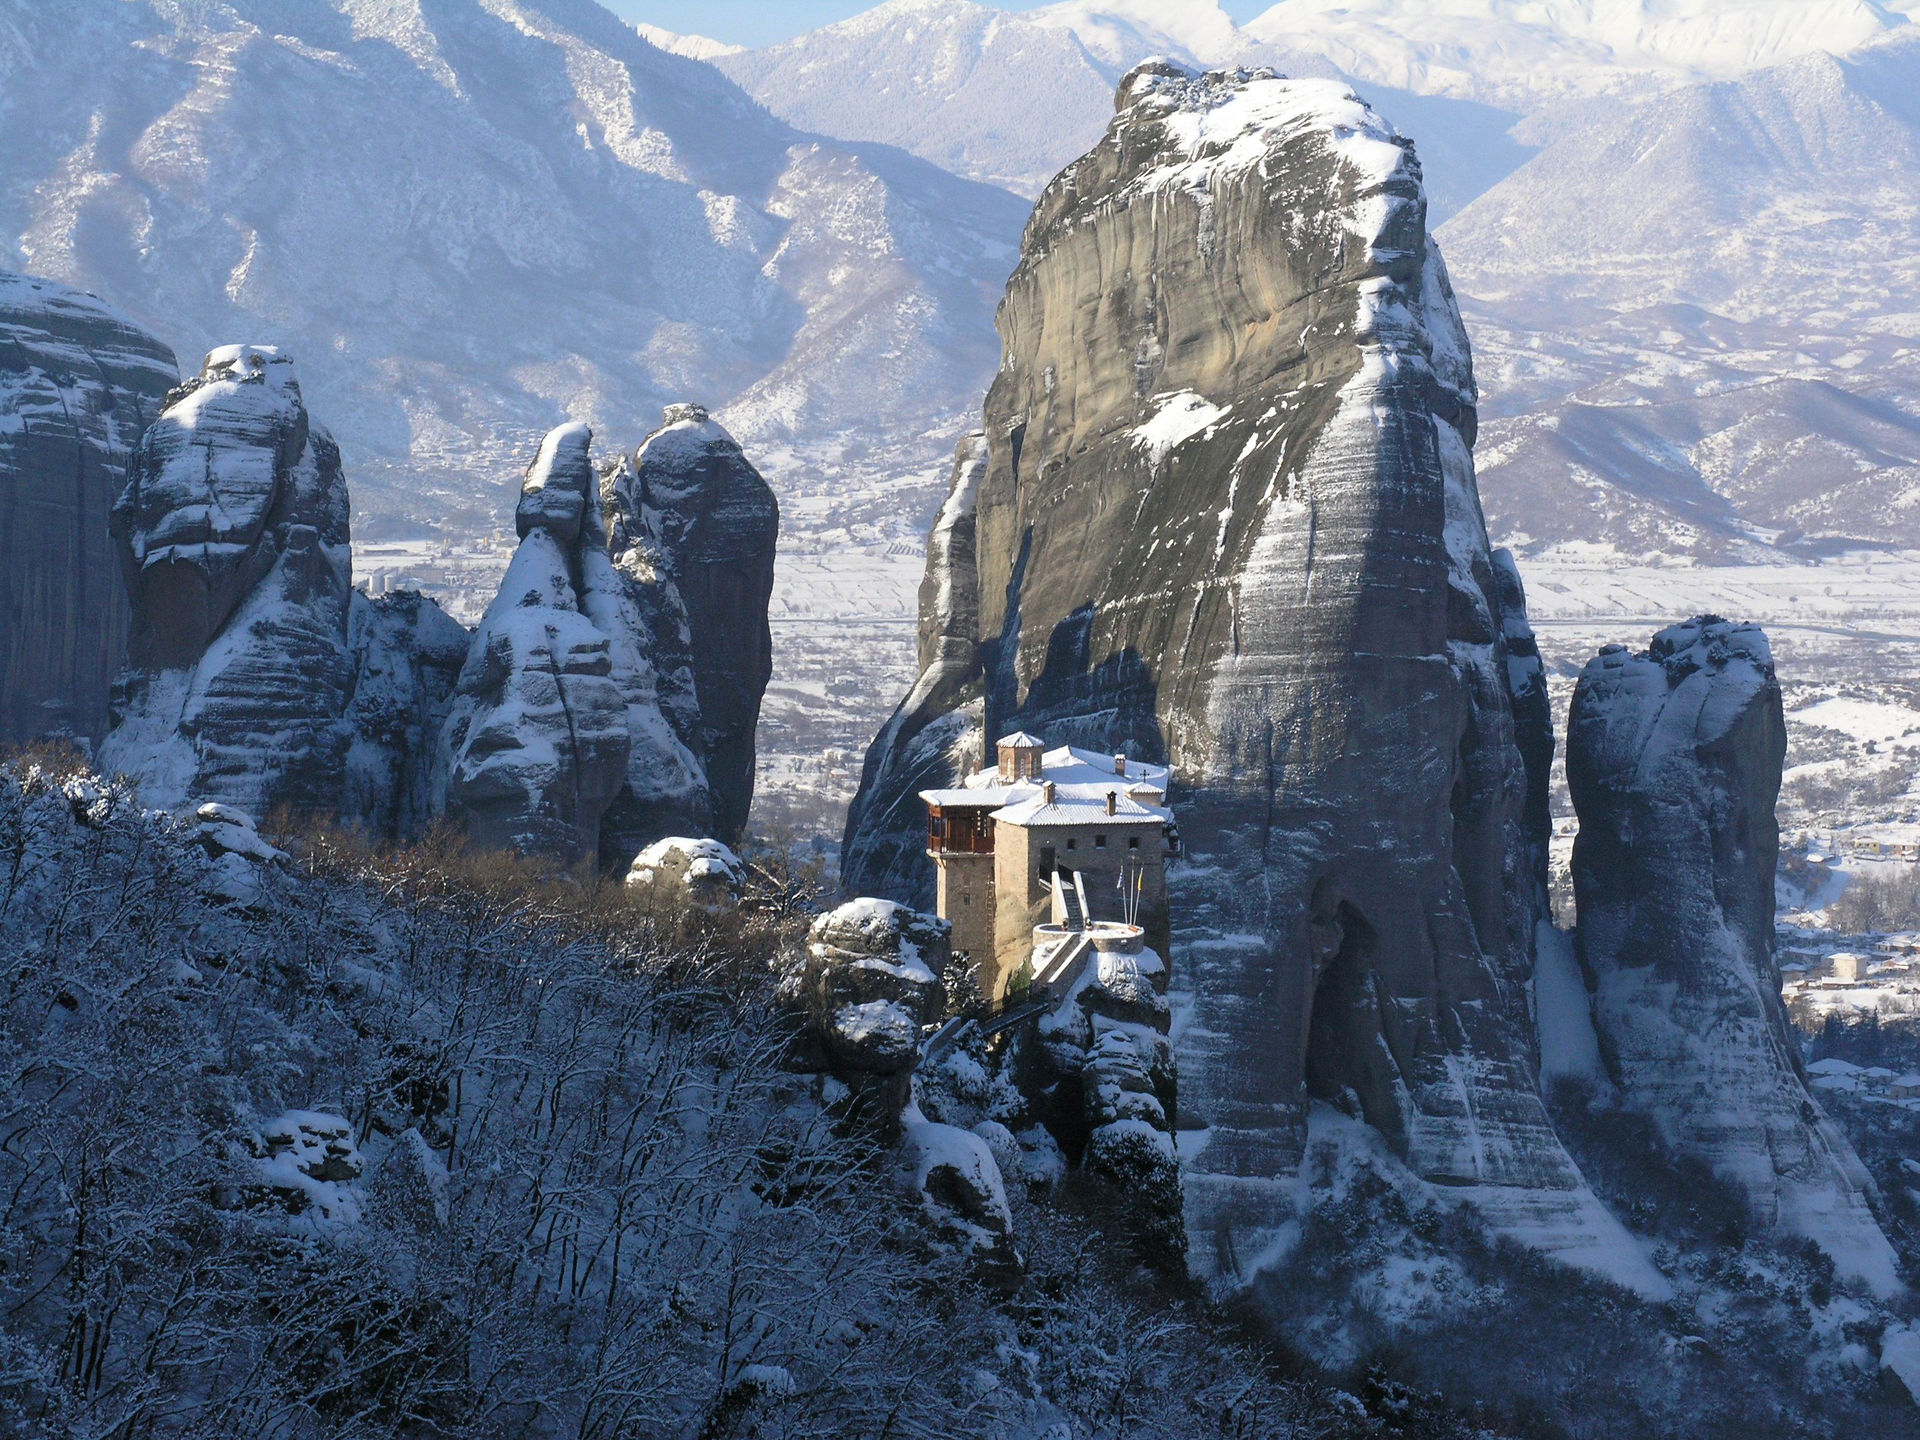 Snow over the monasteries